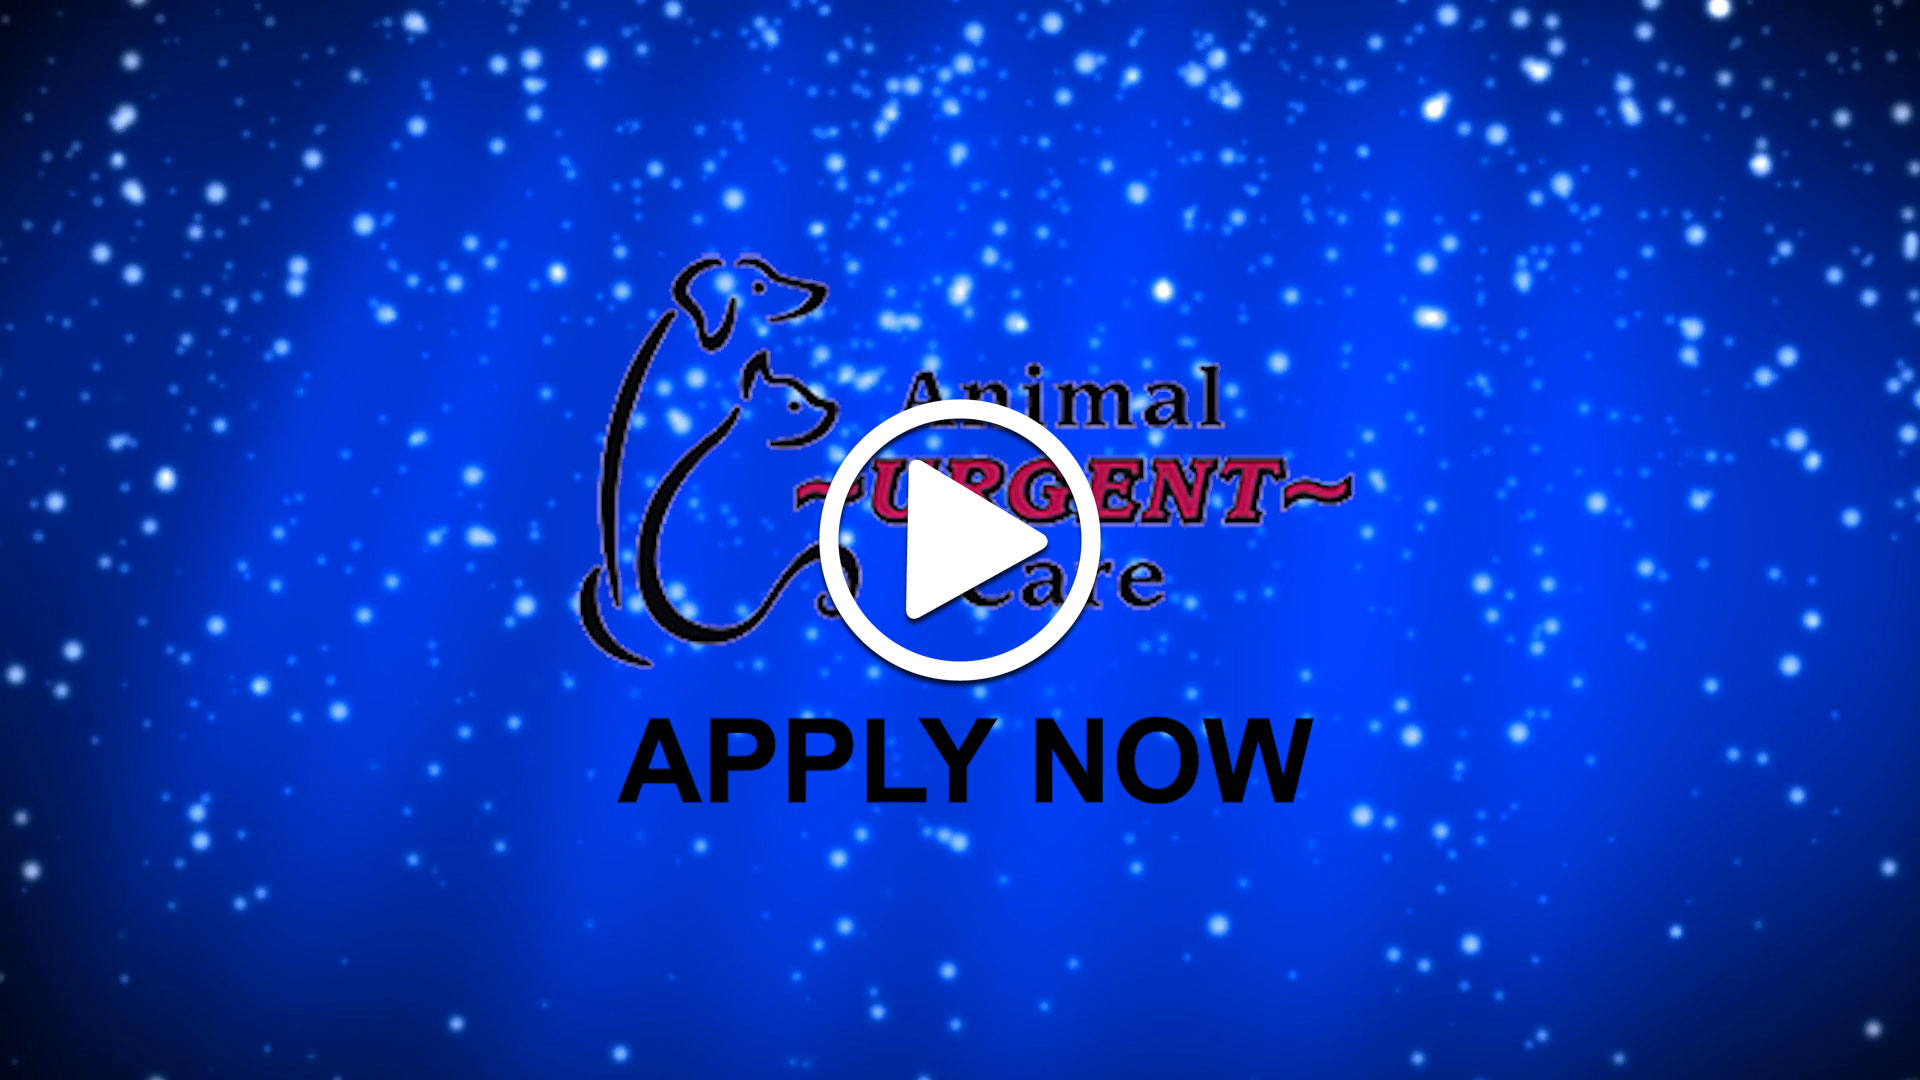 Watch our careers video for available job opening Full Time, Part Time, or Relief ER Veterinarian in Arvada, Colorado